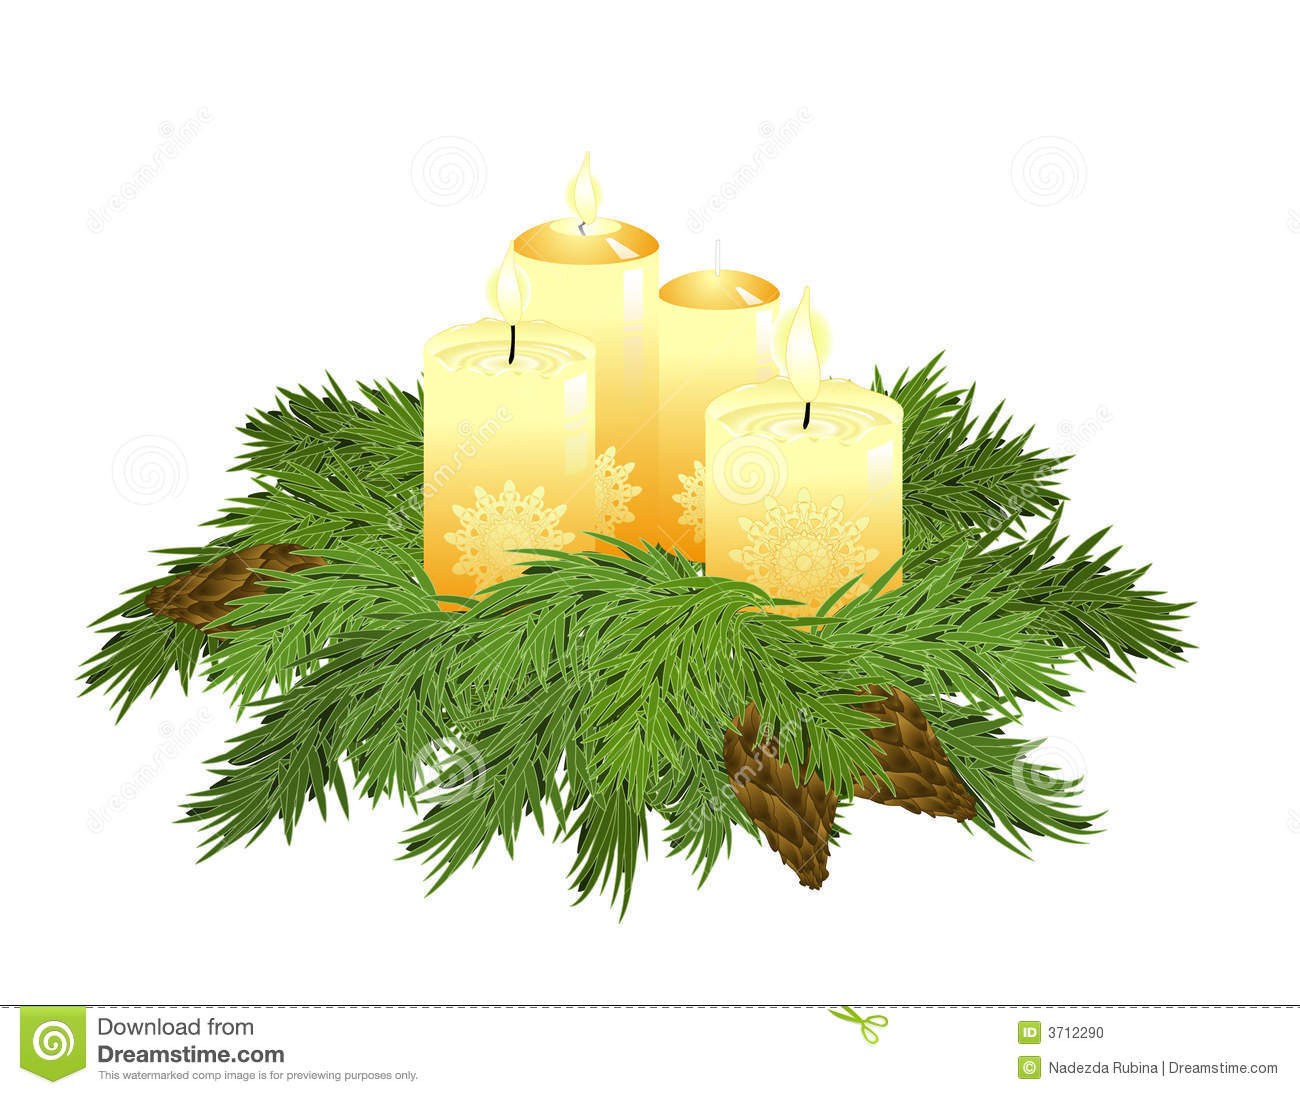 Home » Free Clipart » advent wreath clipart Sunday School Teacher ...